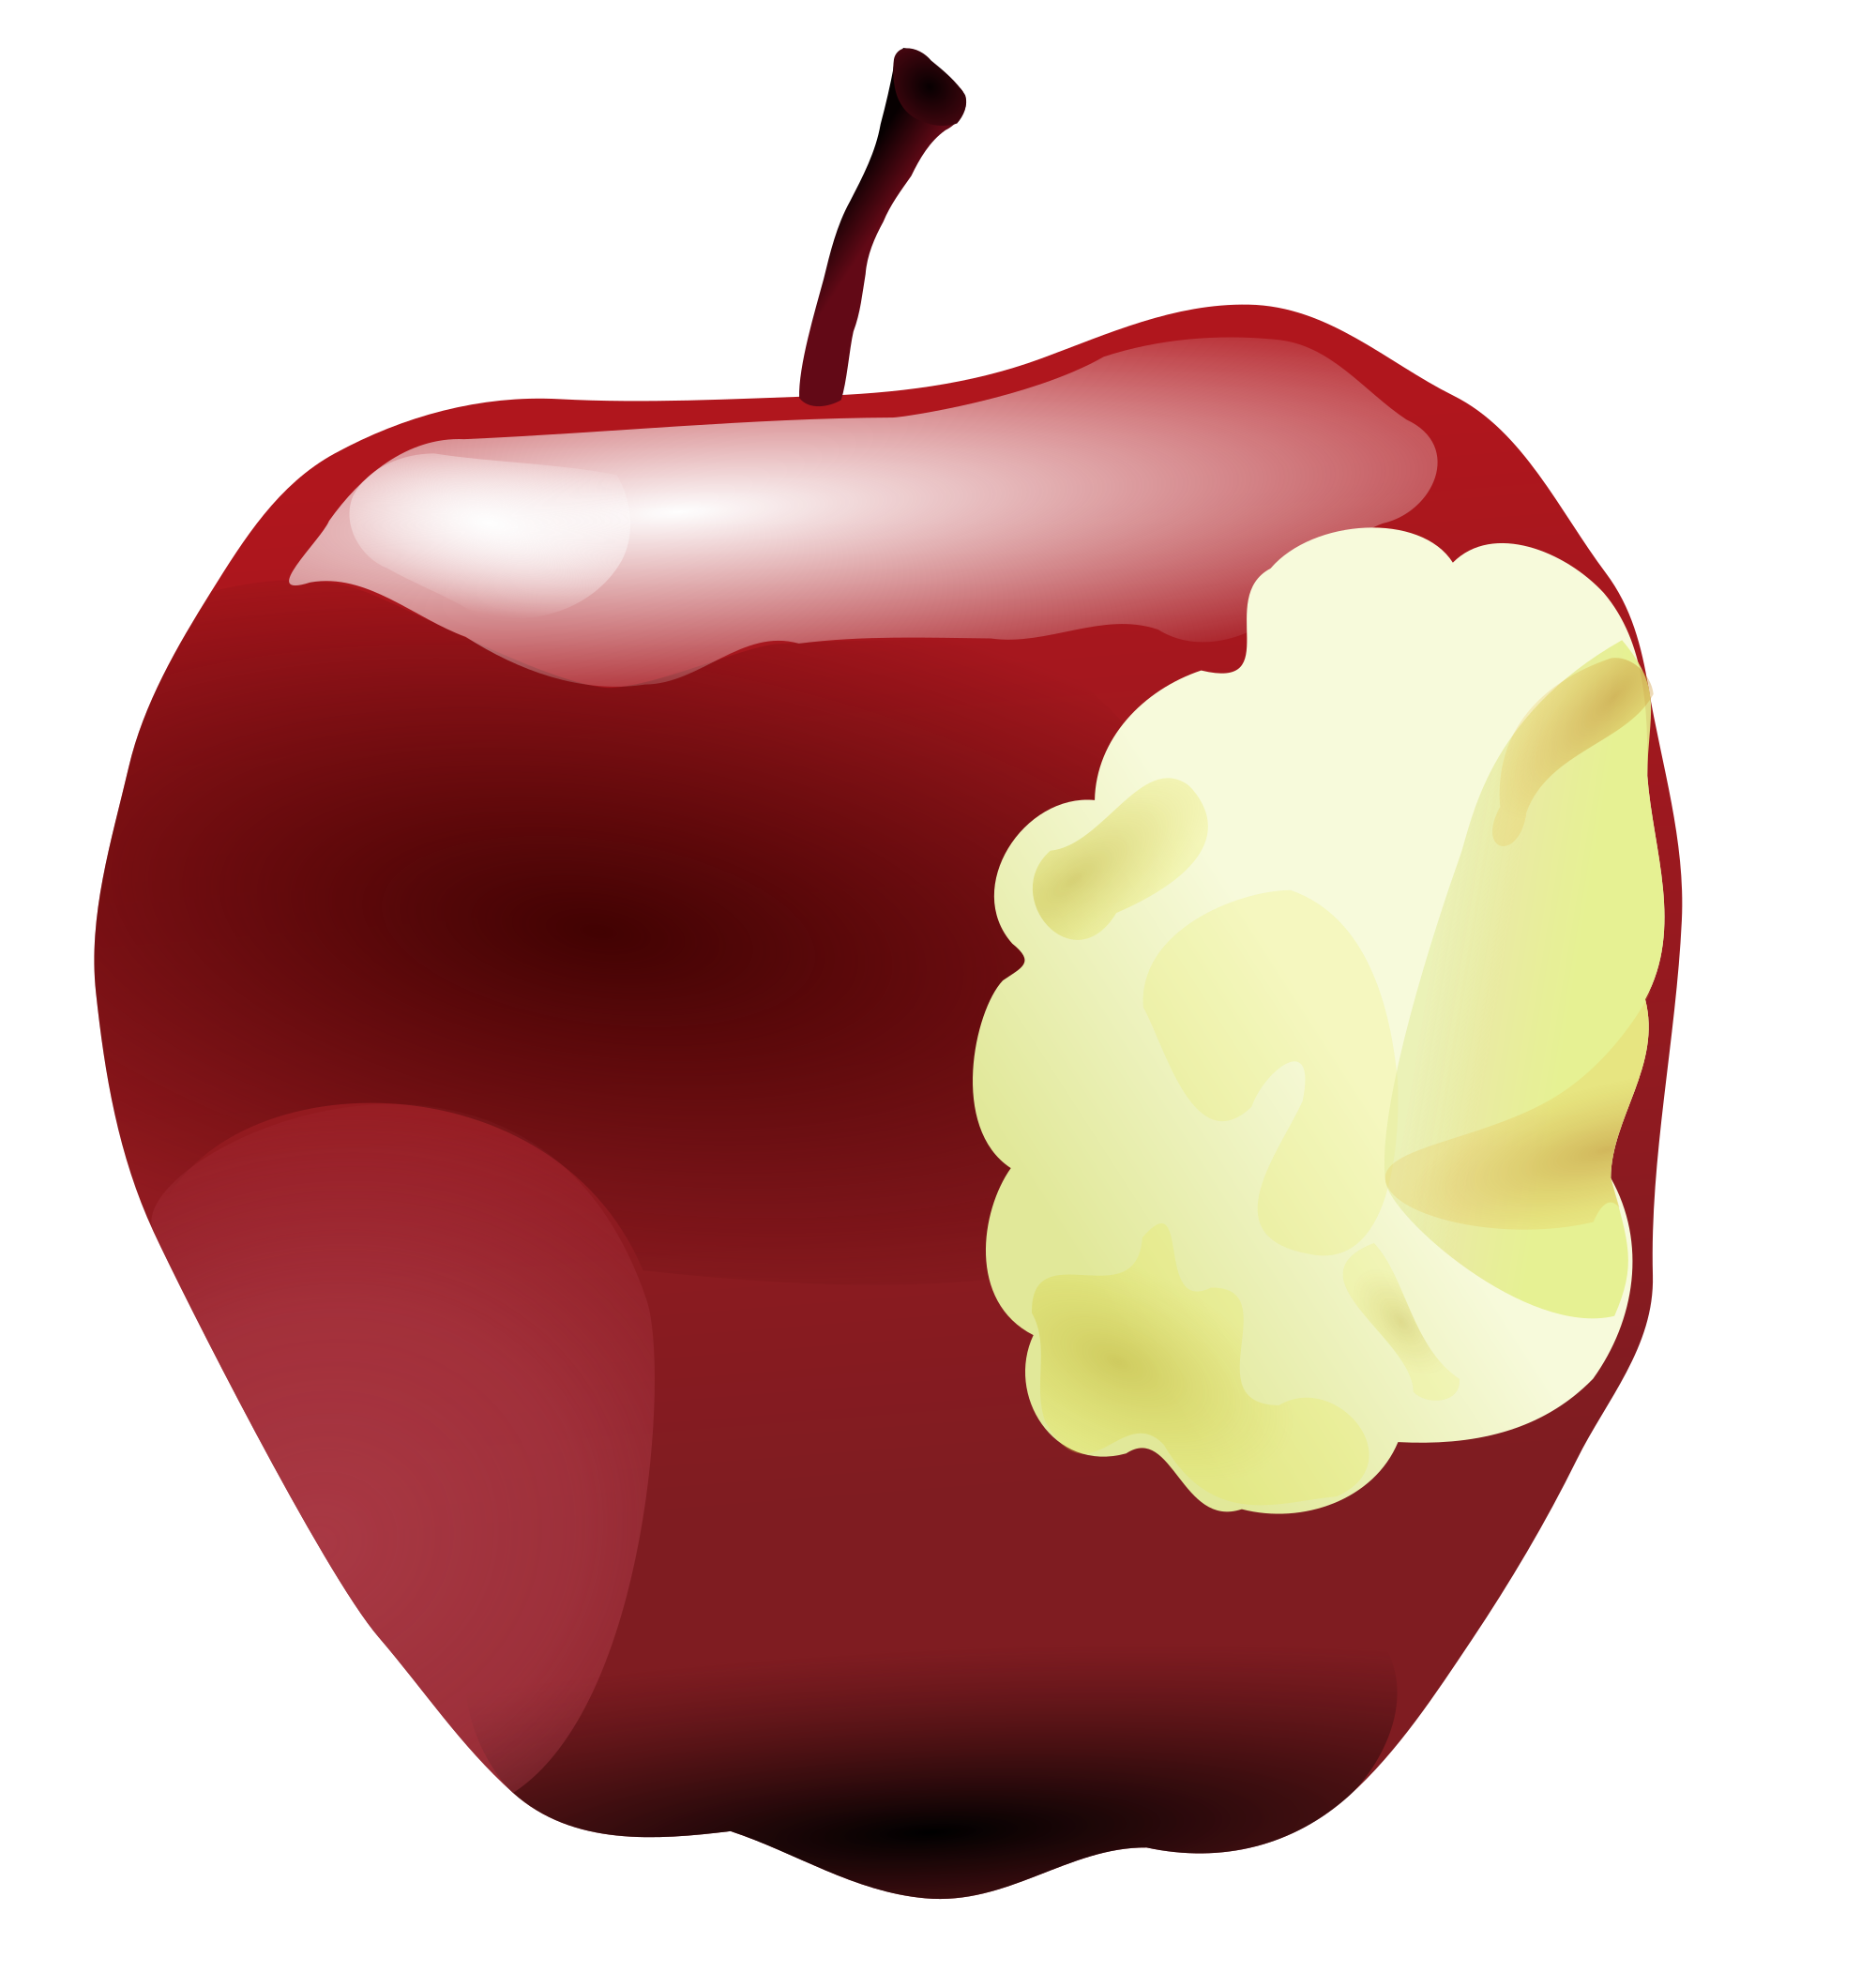 Apple in half clipart graphic black and white library File:Apple bitten.svg - Wikimedia Commons graphic black and white library